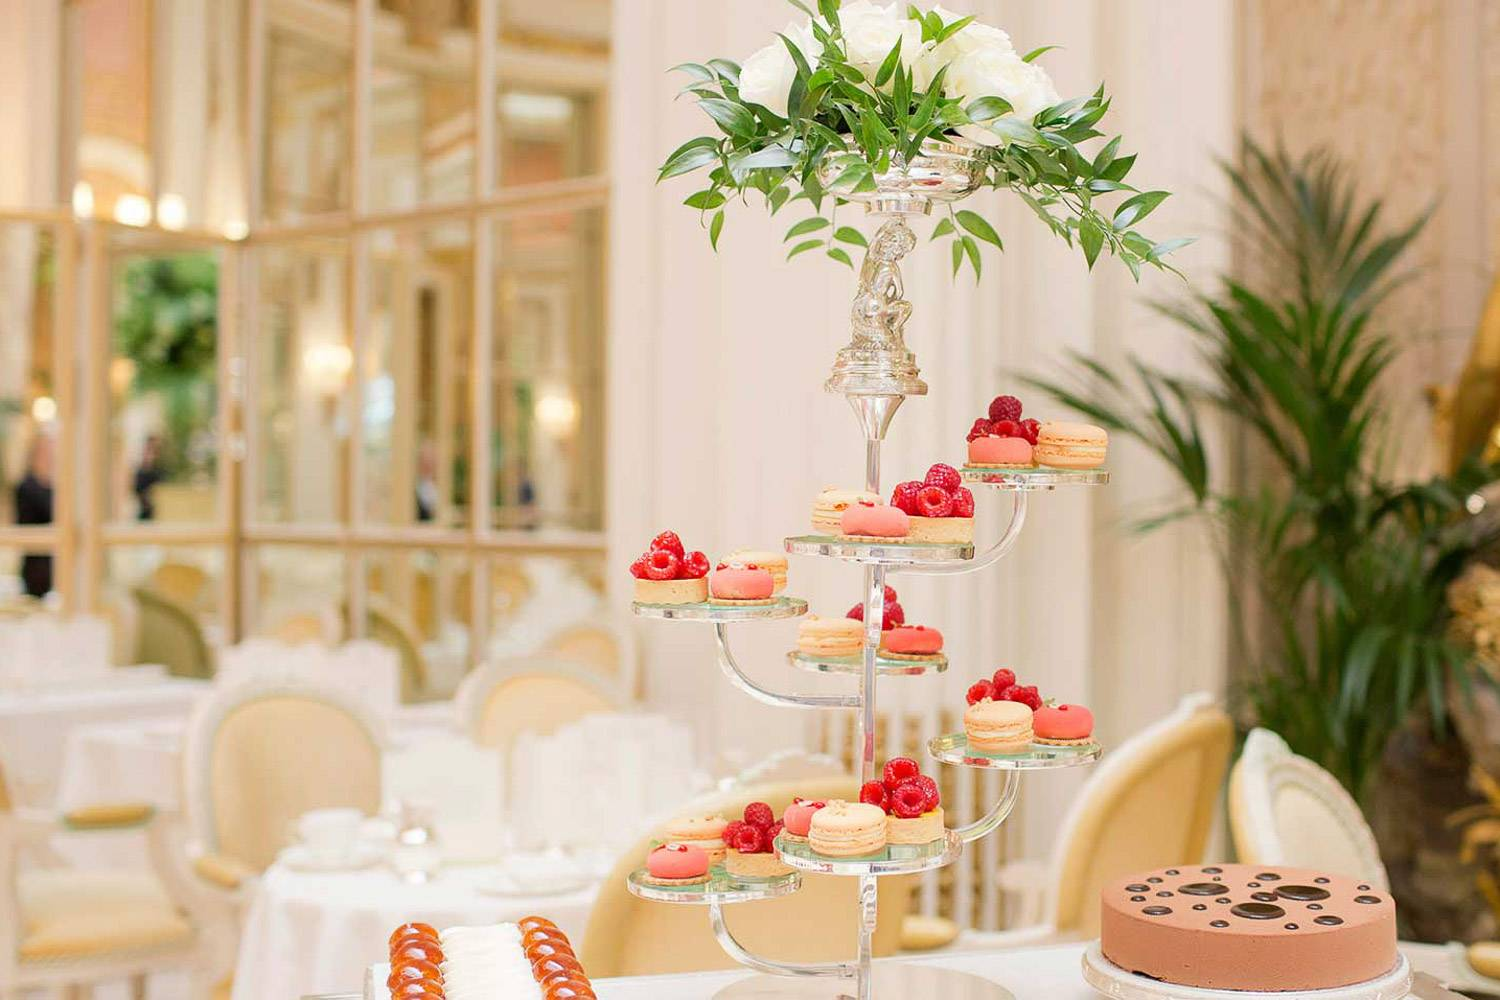 An image of dainty pastries, with luxurious dining décor in the background at The Ritz London.